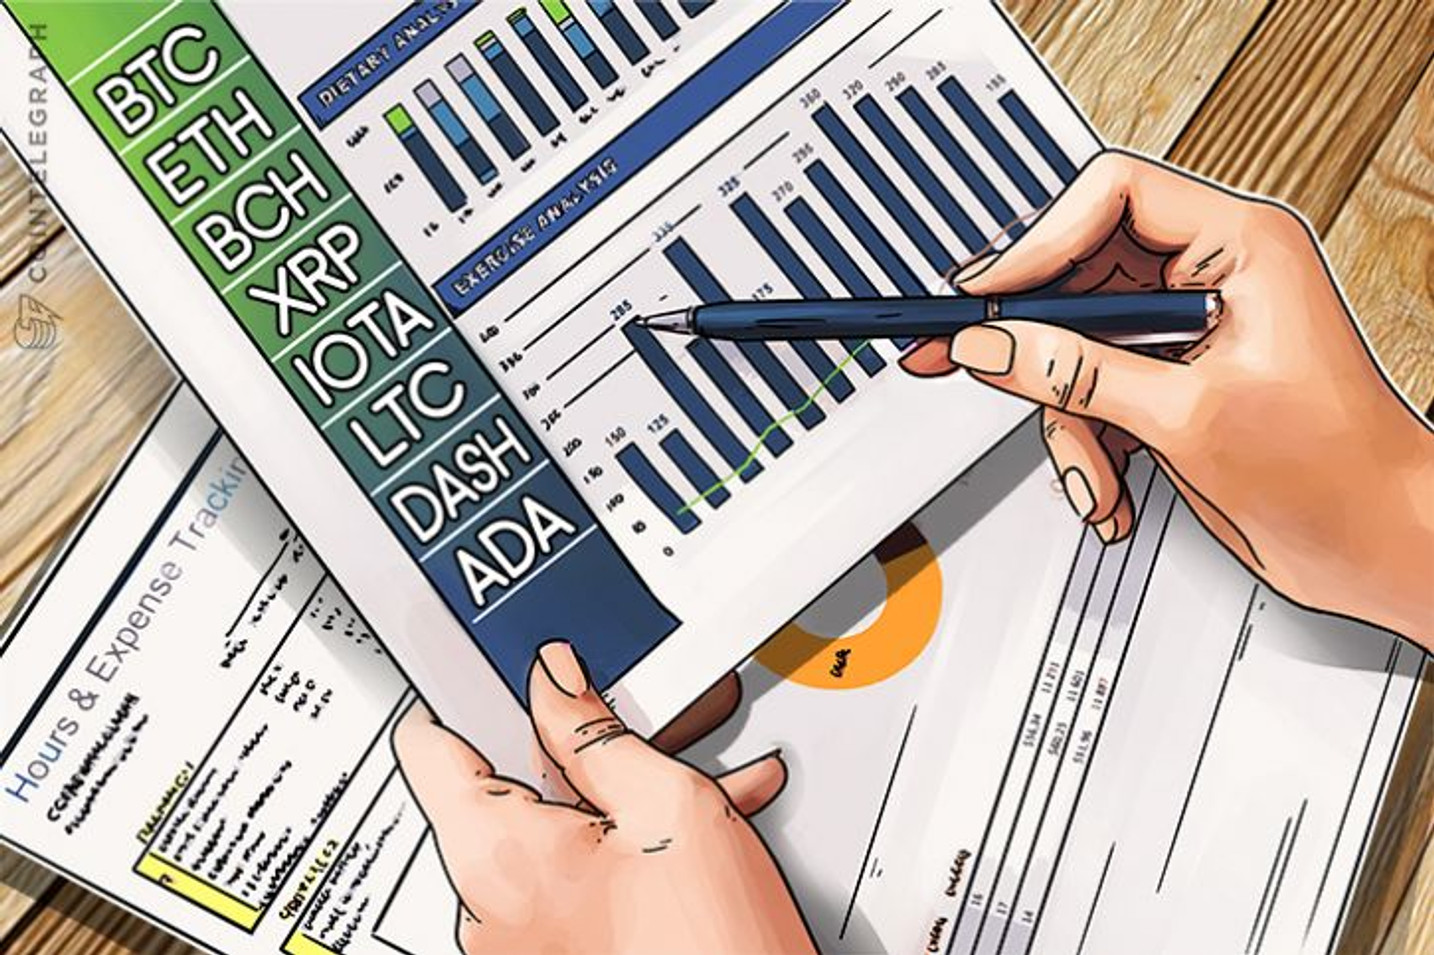 Bitcoin, Ethereum, Bitcoin Cash, Ripple, IOTA, Litecoin, NEM, Cardano: Price Analysis, Jan. 23